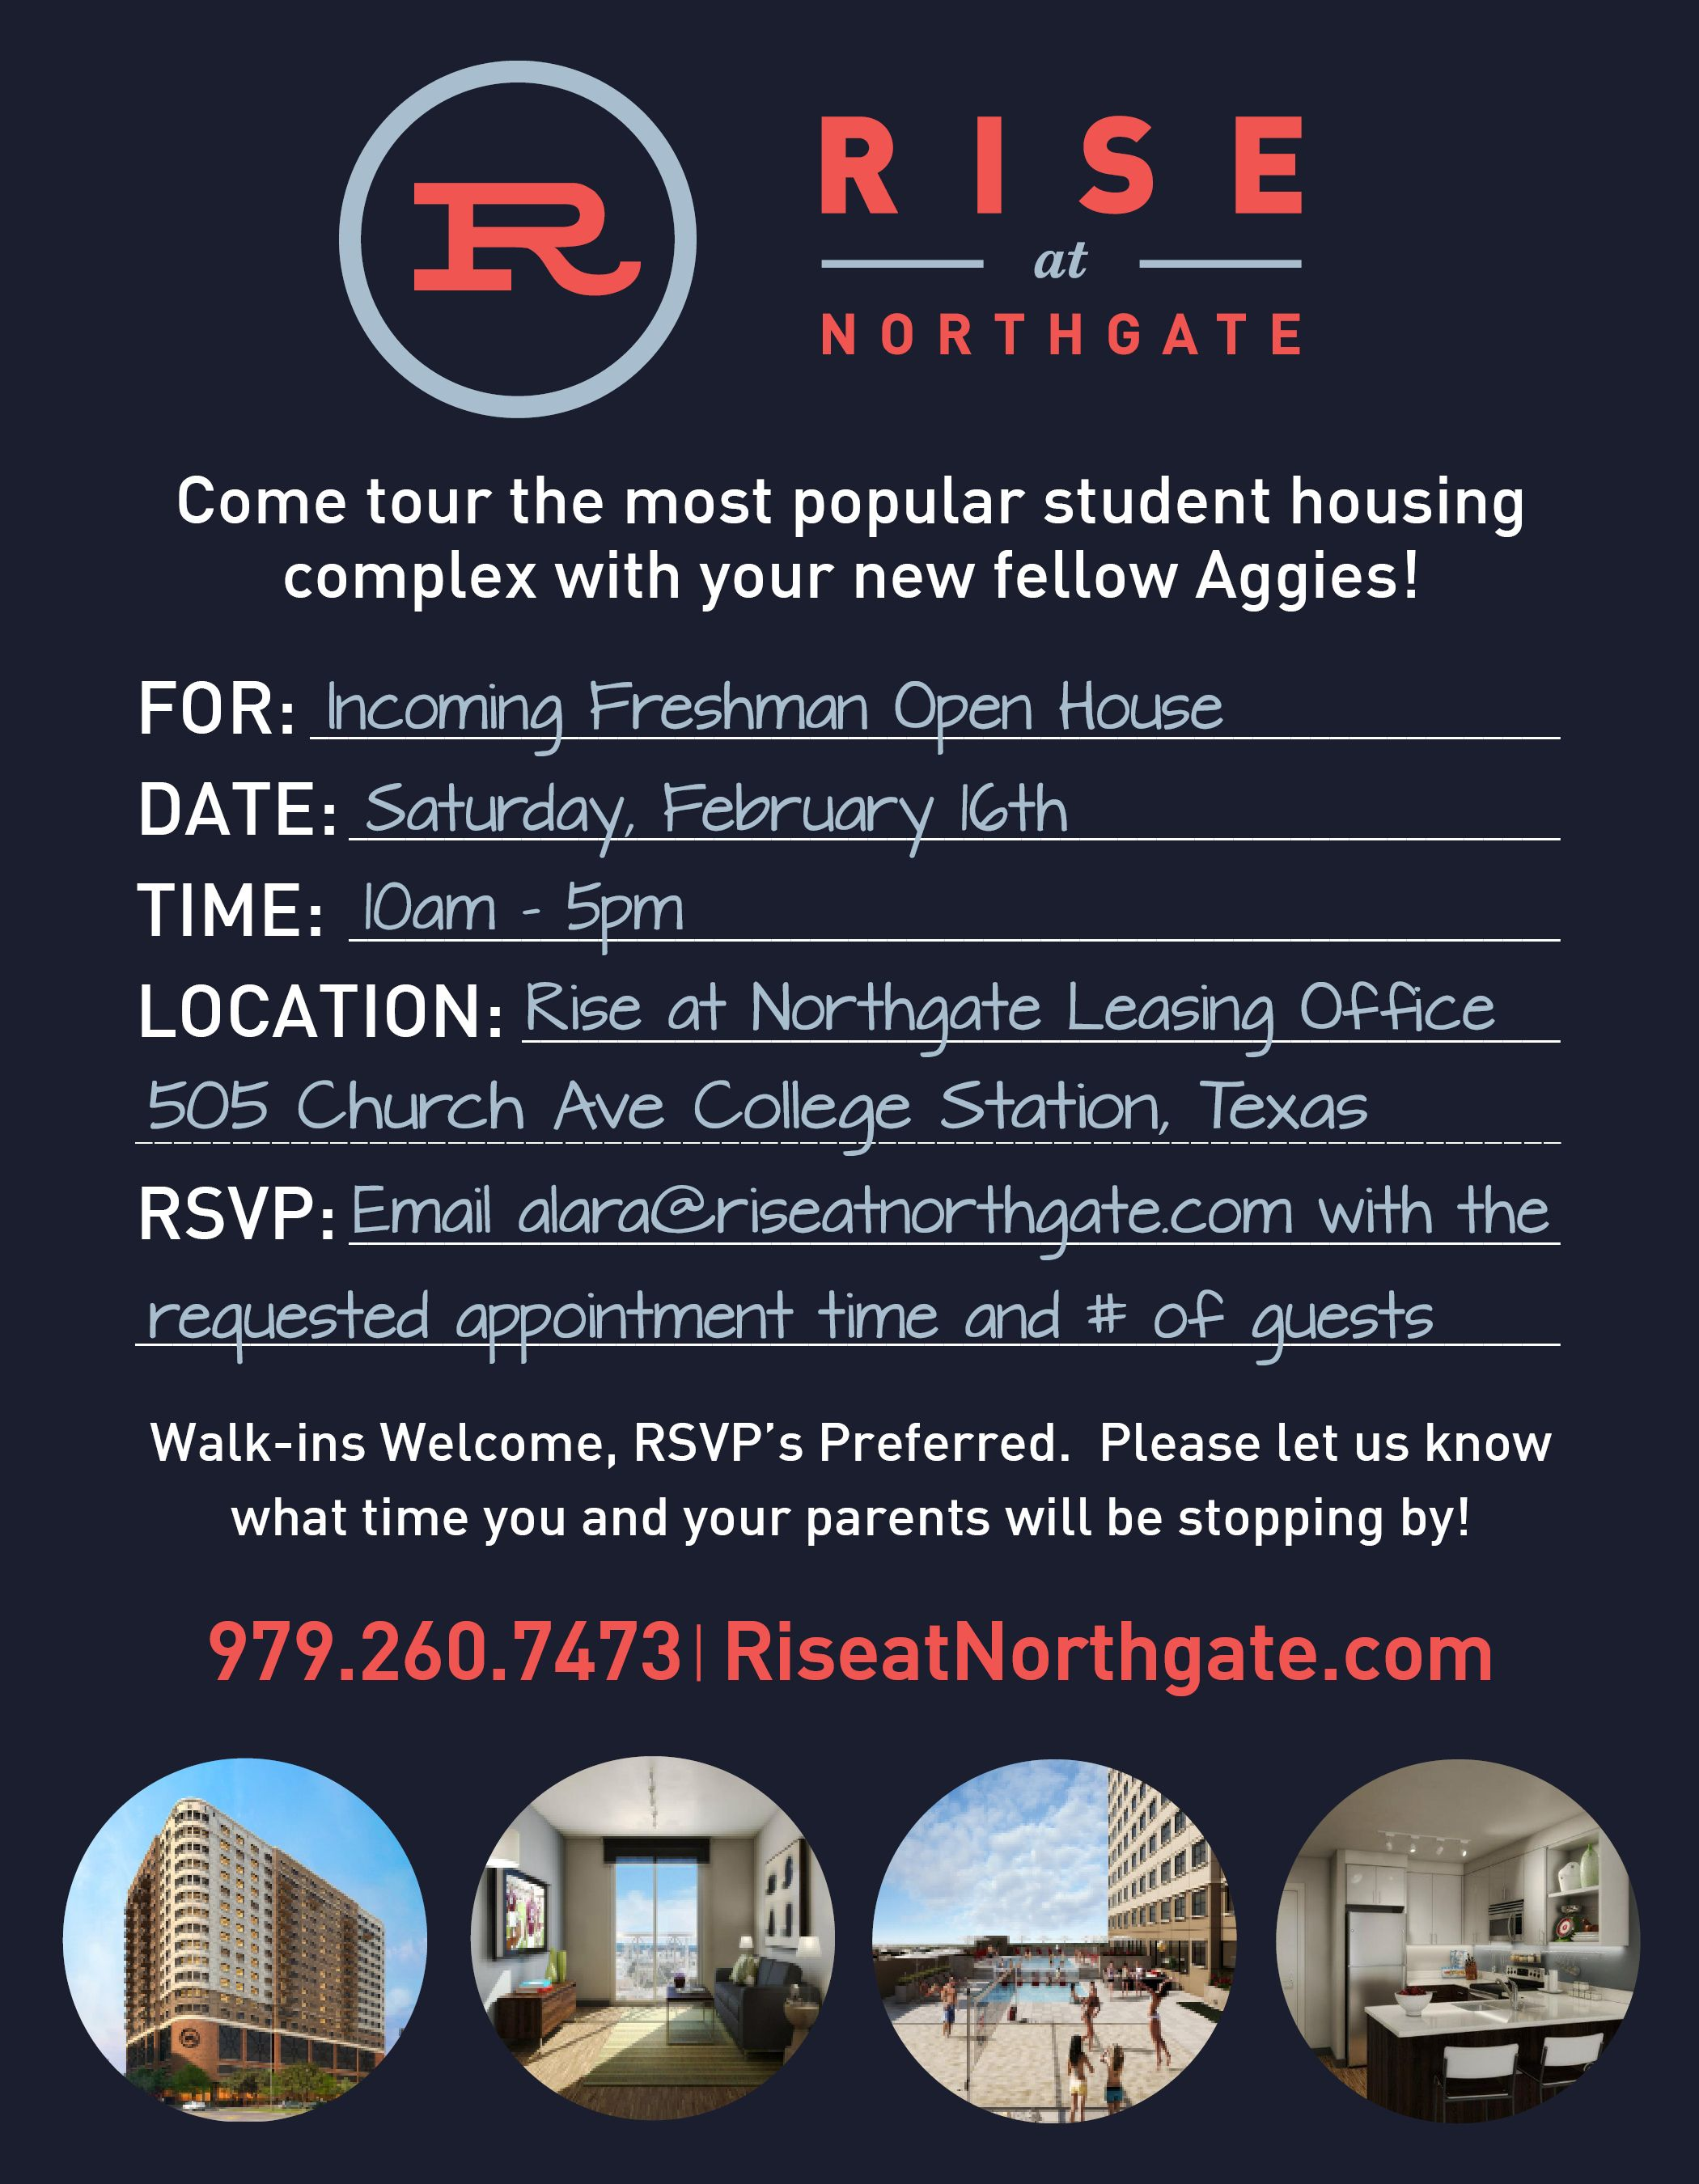 Stop by 505 Church Ave for Aggieland Saturday! #RiseatNorthgate #Aggieland